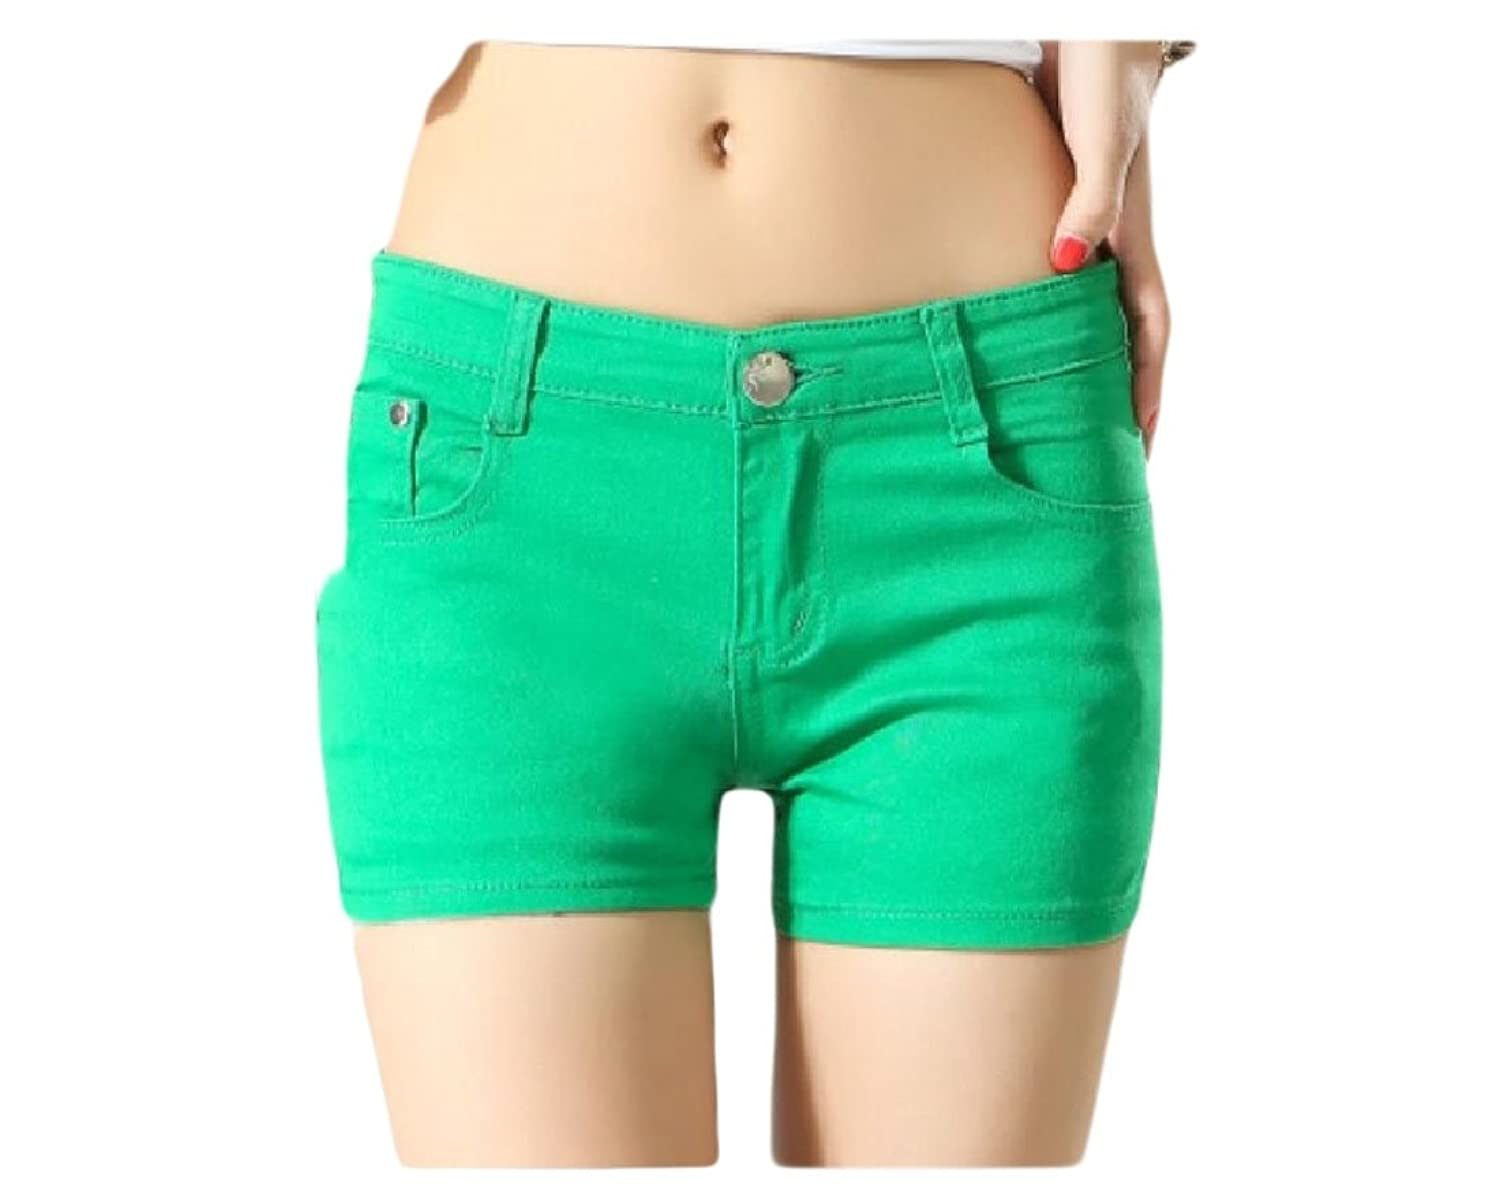 Abetteric Women Short Summer Shorts Skinny Summer Leisure Mulit Color Shorts Jeans Green XS